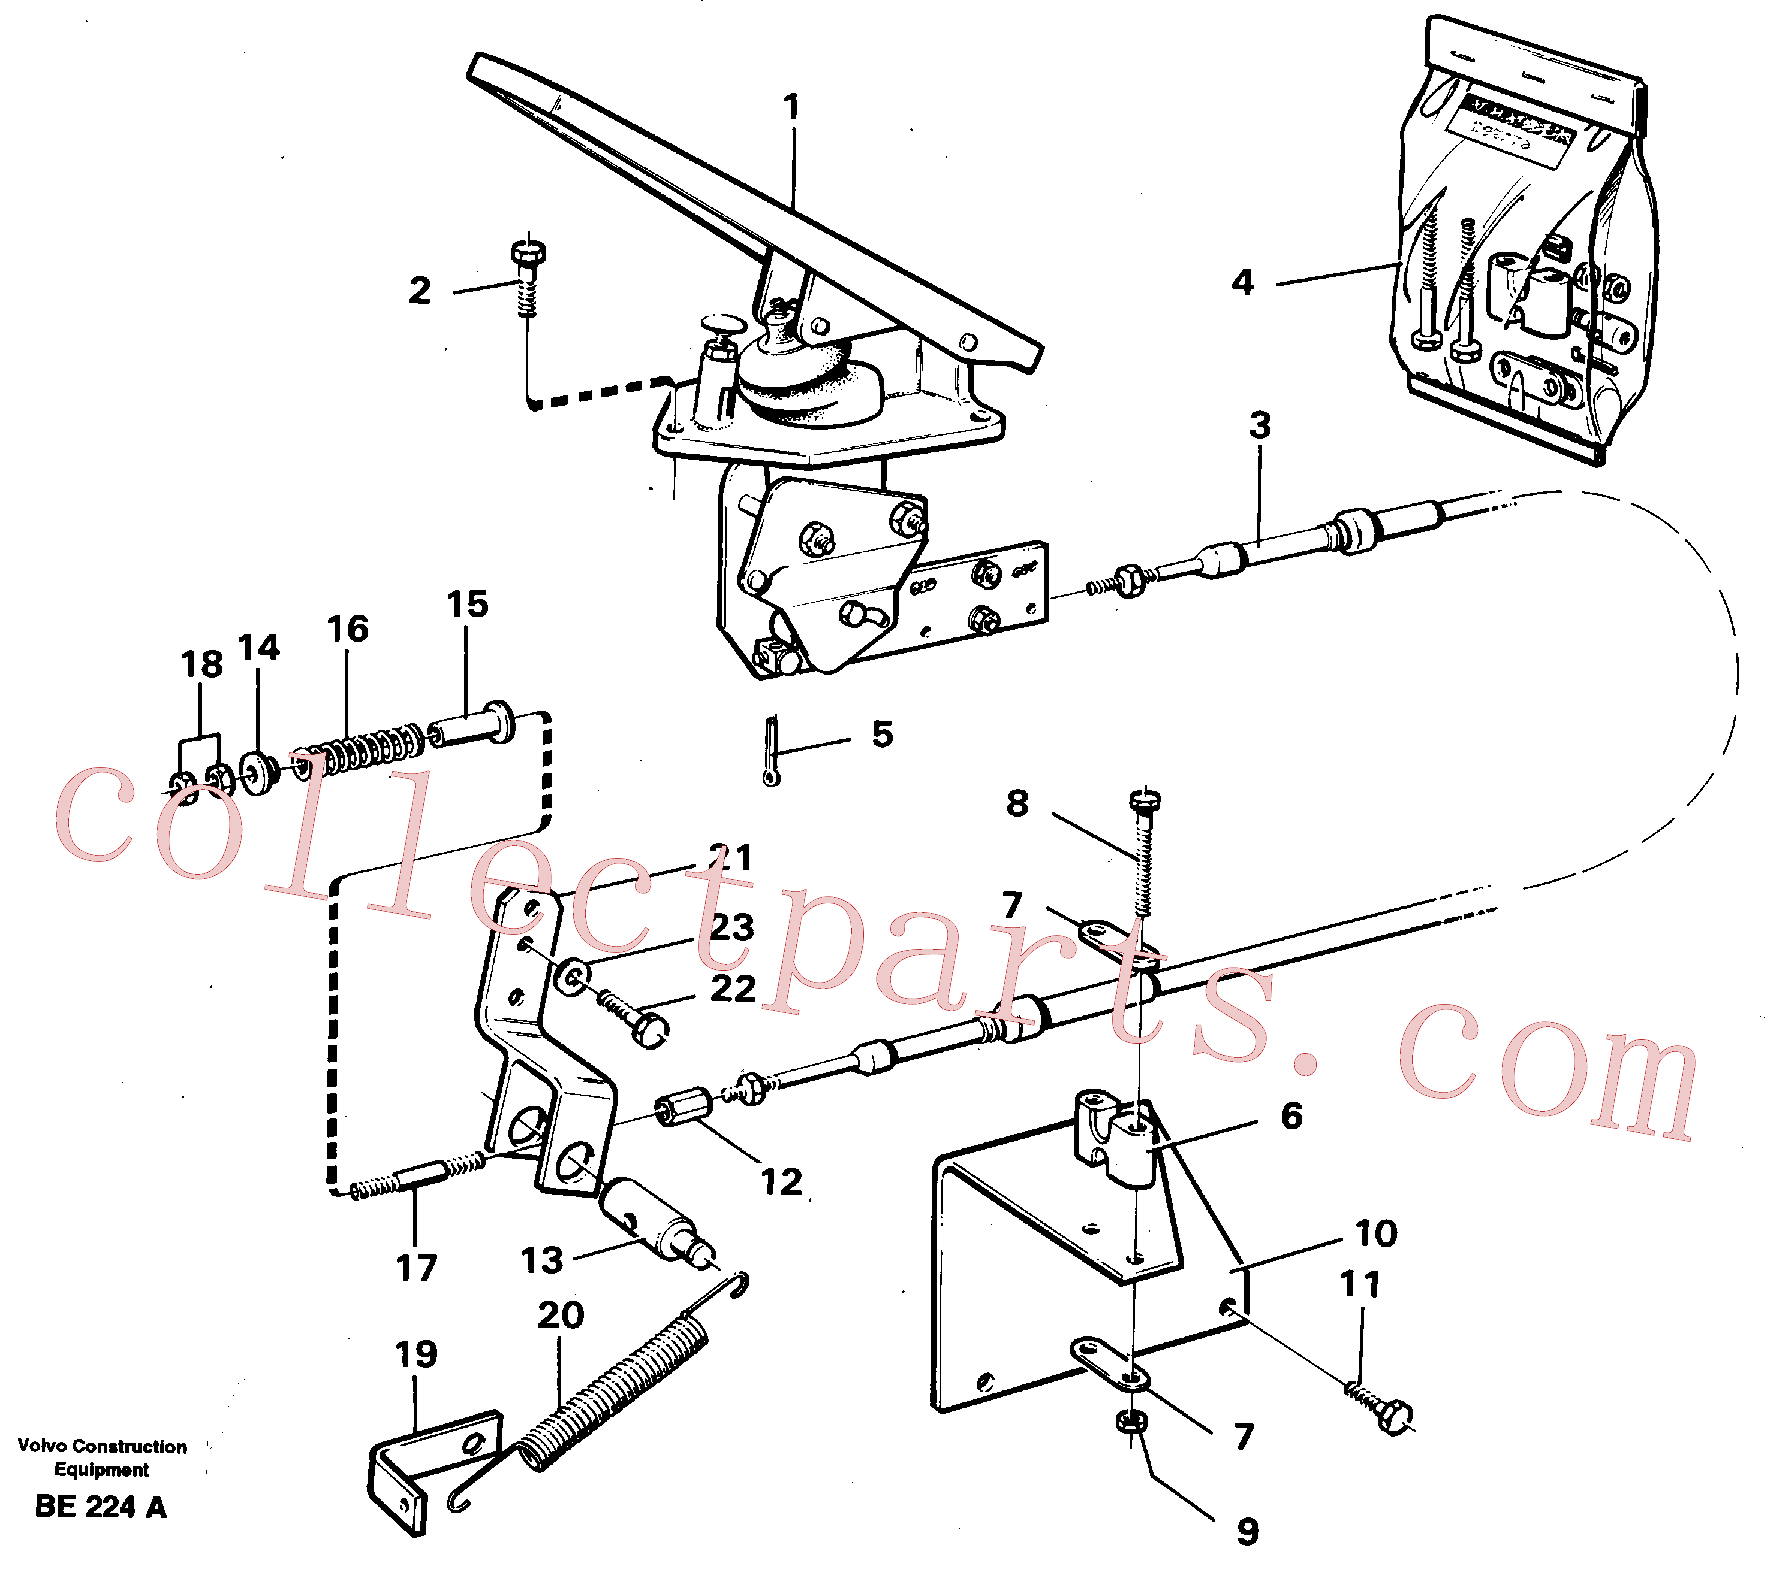 VOE940133 for Volvo Governor controls.(BE224A assembly)